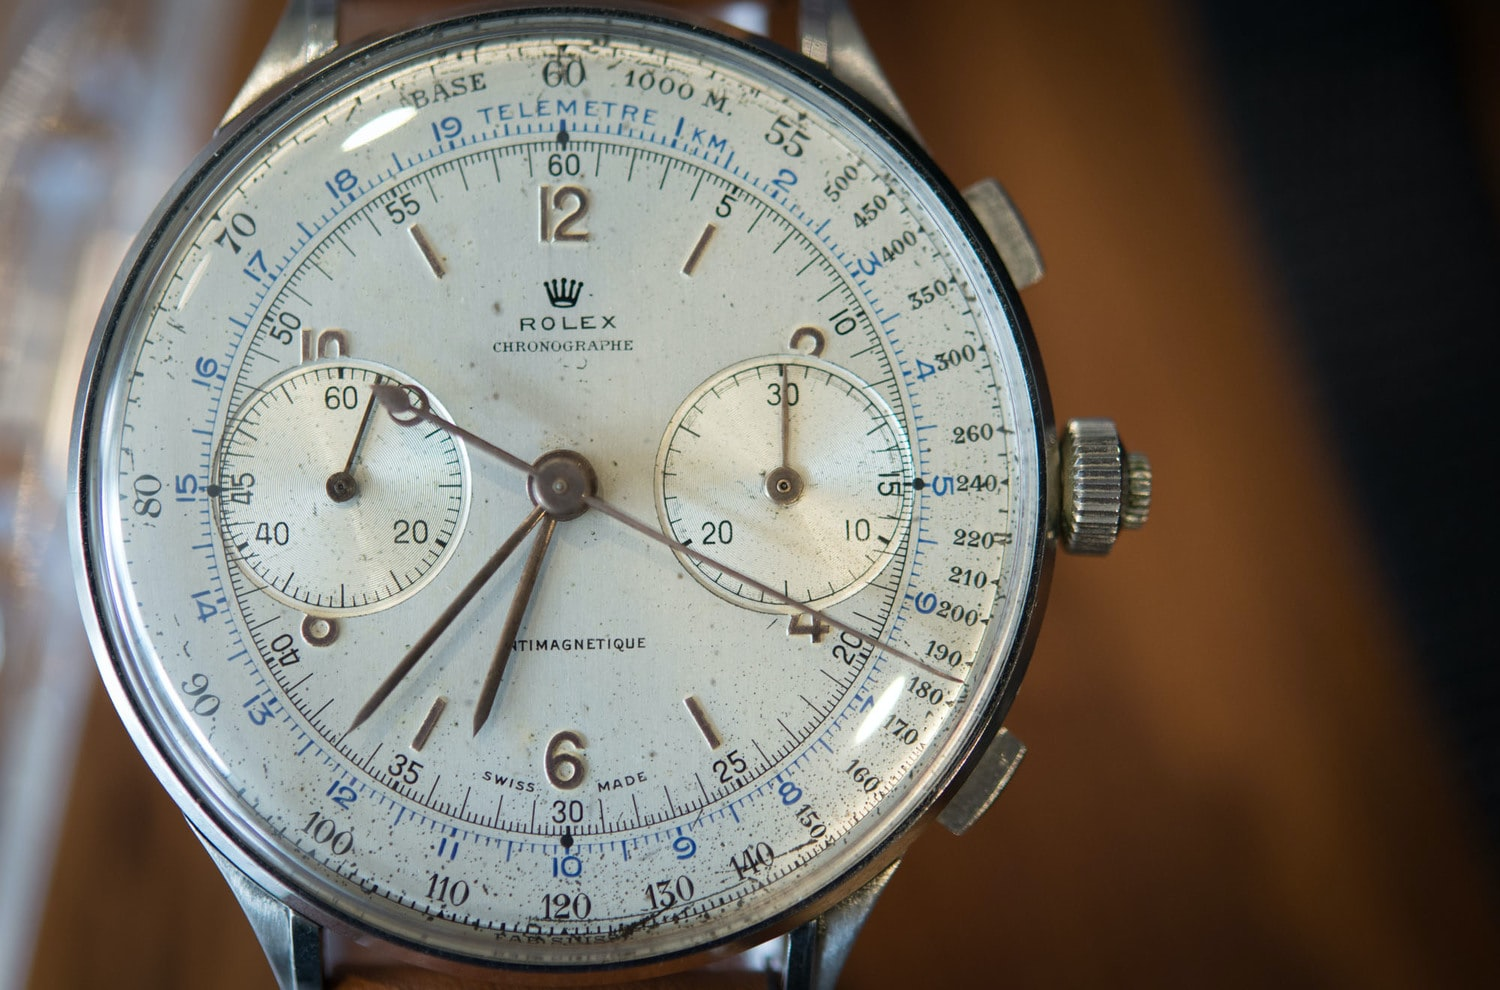 Hands-On: With Three Of The Absolute Rarest Vintage Rolex Chronographs, Ever: The 4113 Split-Seconds, The Hermes Paul Newman, And The Zerographe